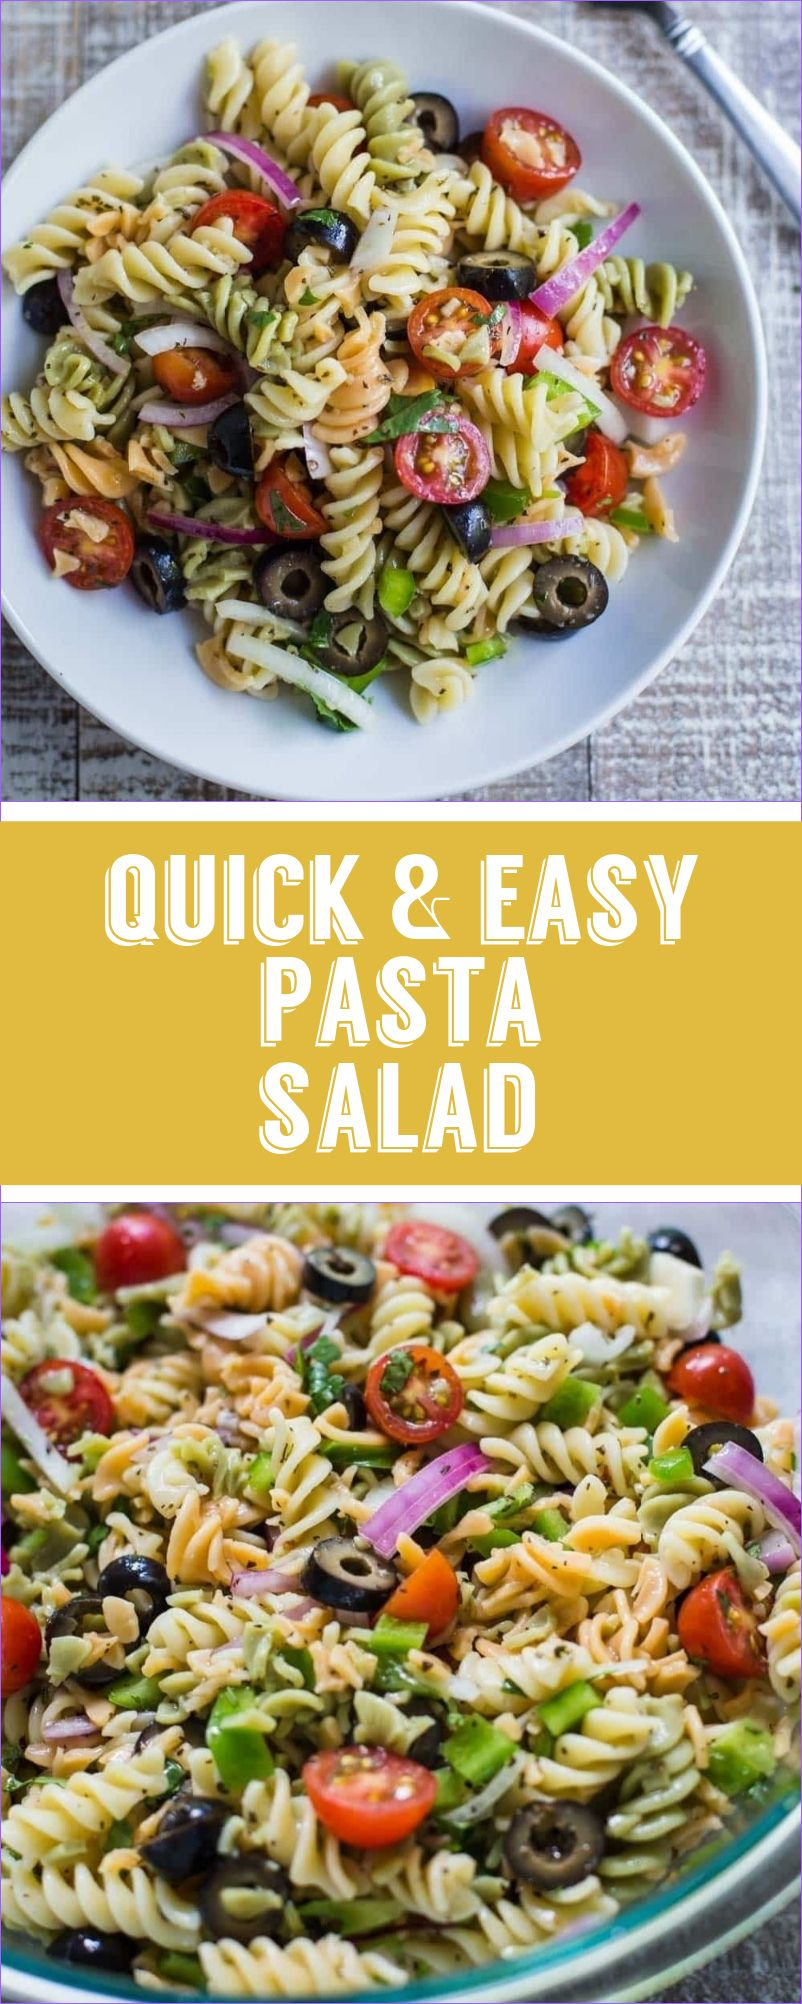 Quick Easy Vegan Pasta Salad This Recipes Comes Together